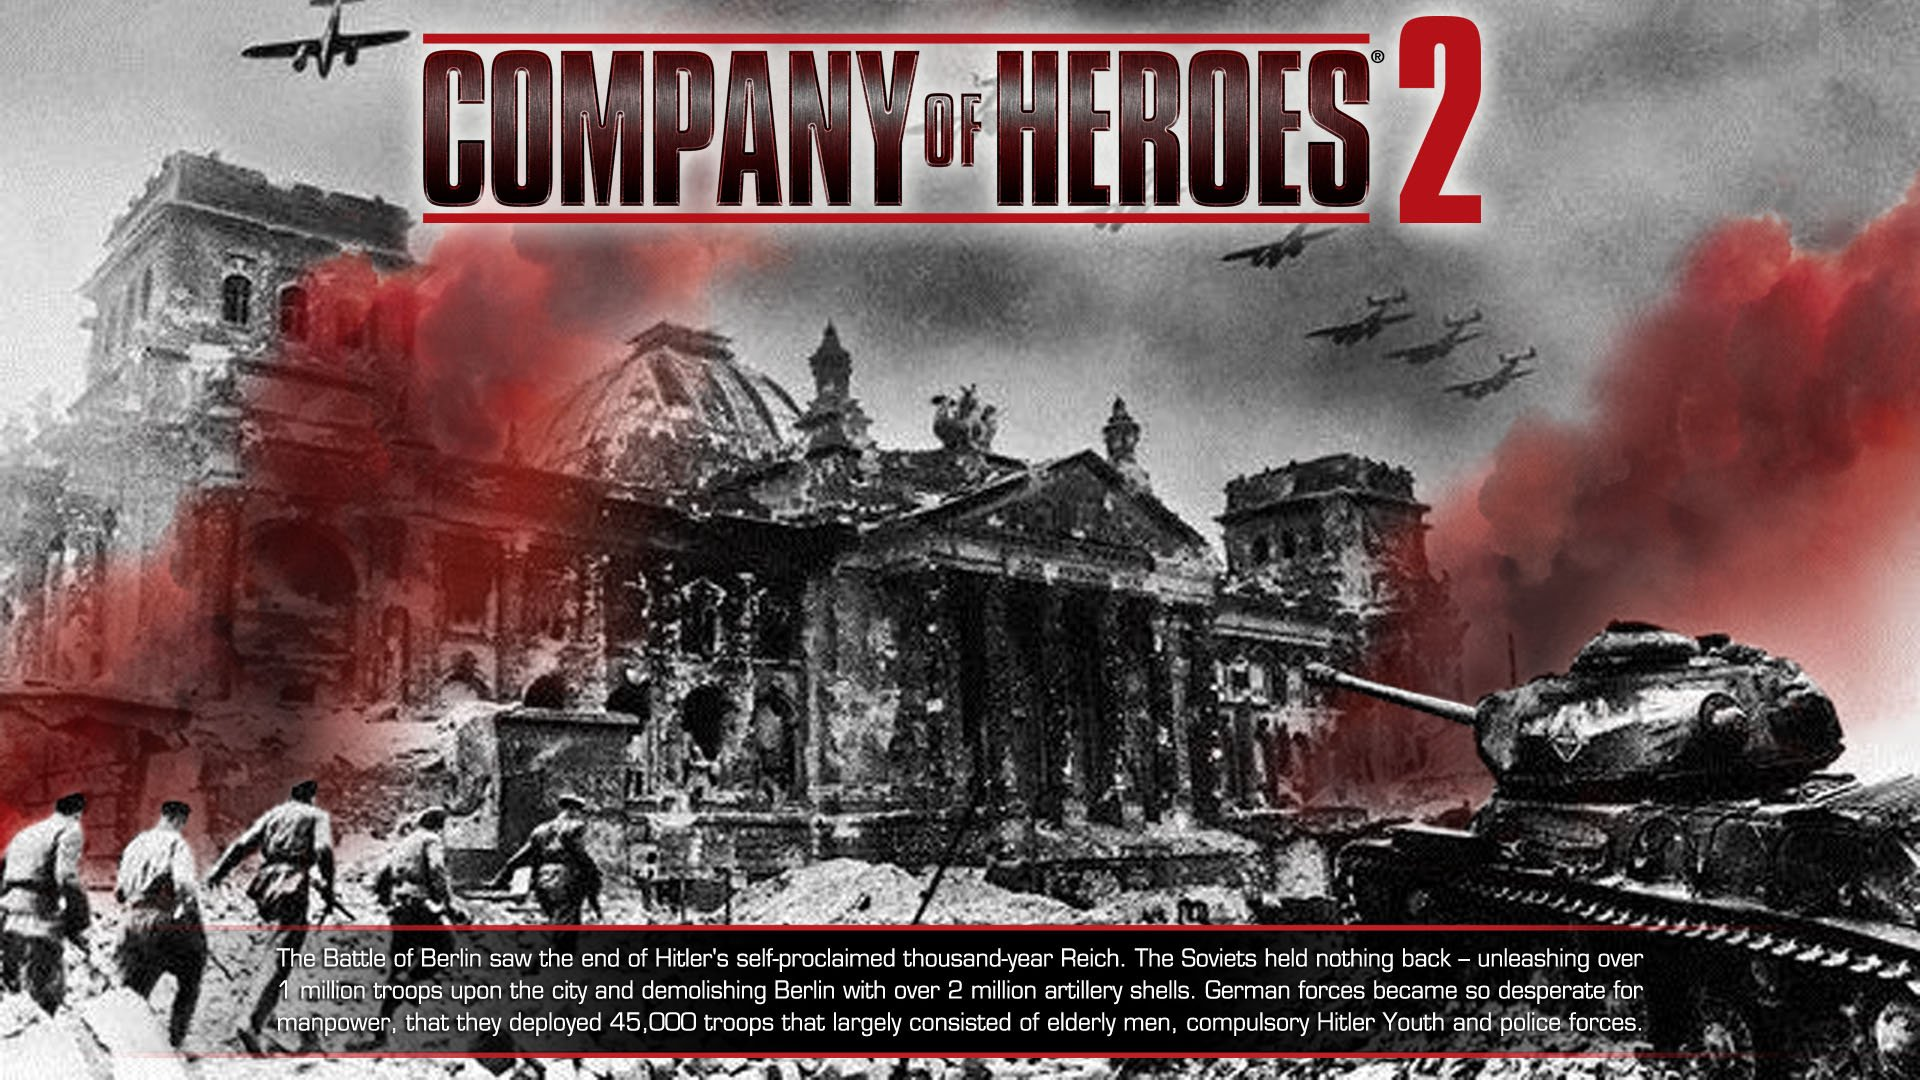 wallpaper #13 wallpaper from company of heroes 2 - gamepressure